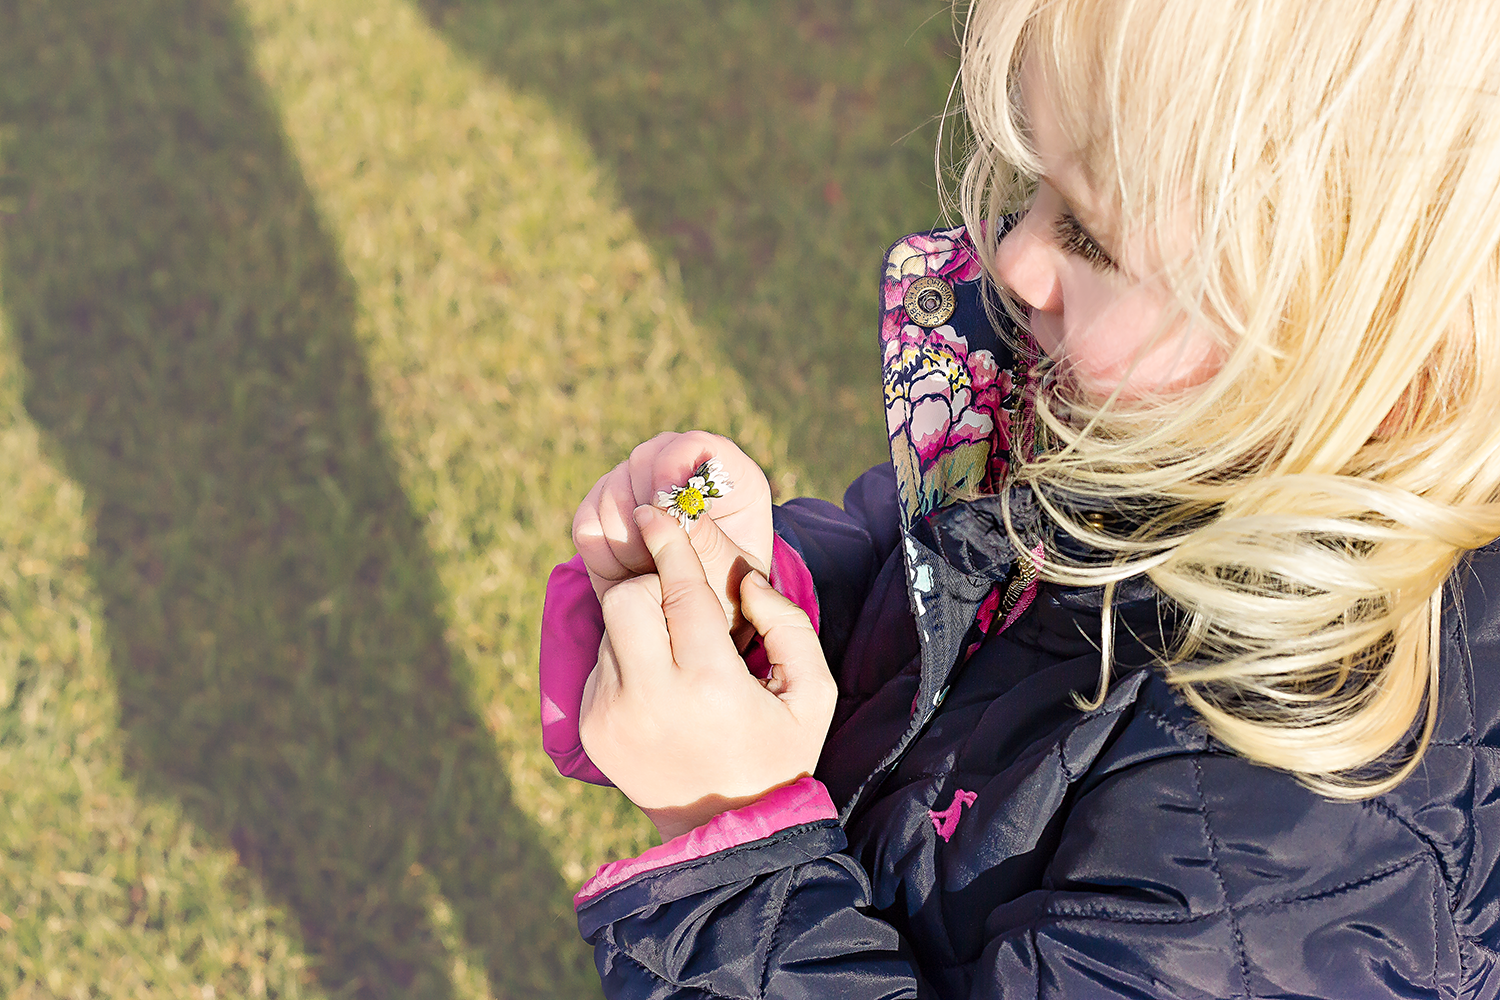 Blonde-haired girl snuggled up in her coat holding a daisy in her hands